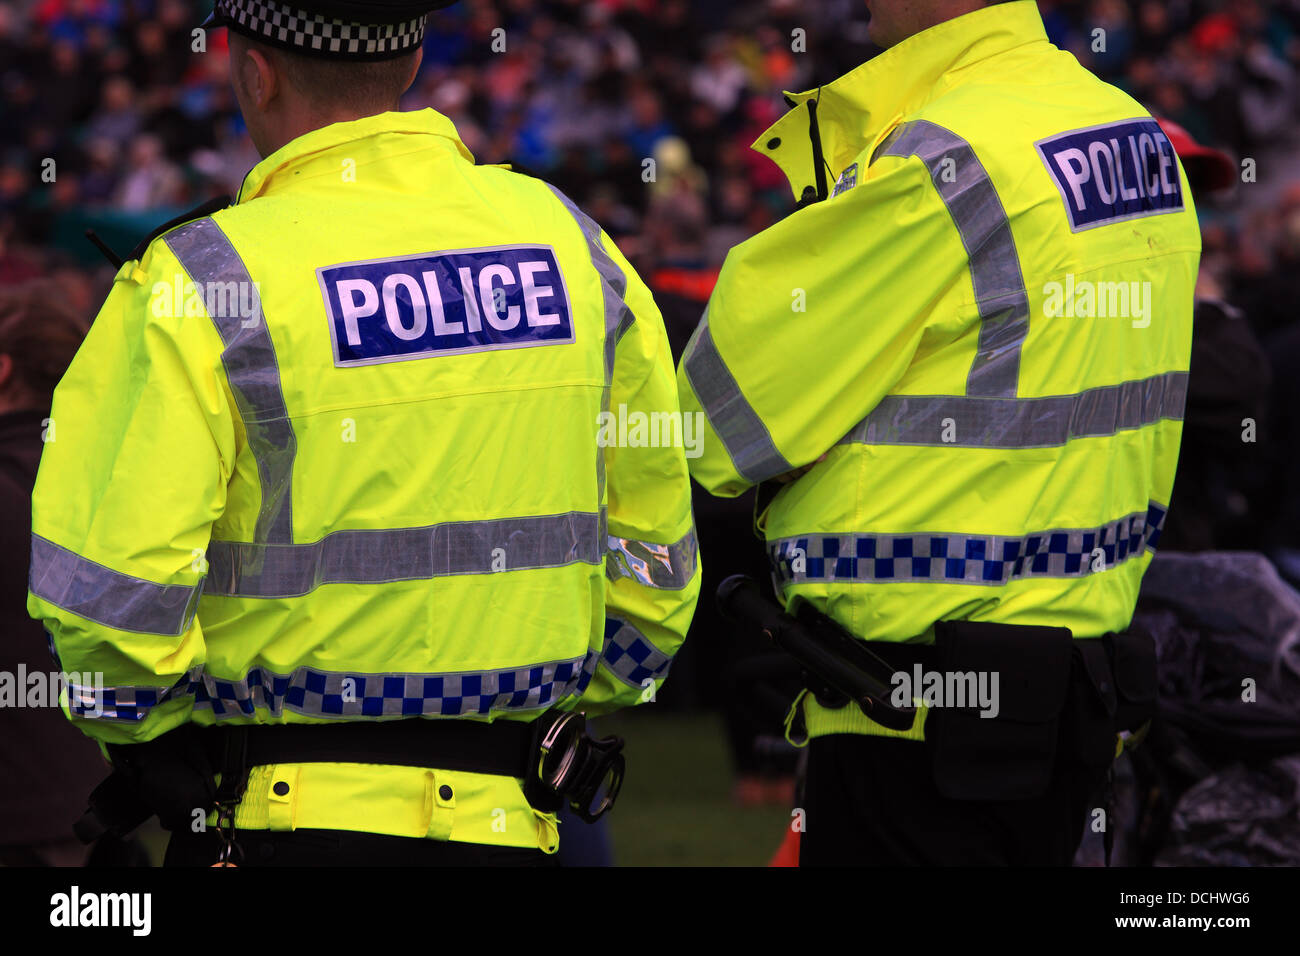 UK police officers patrolling at a large crowd venue - Stock Image